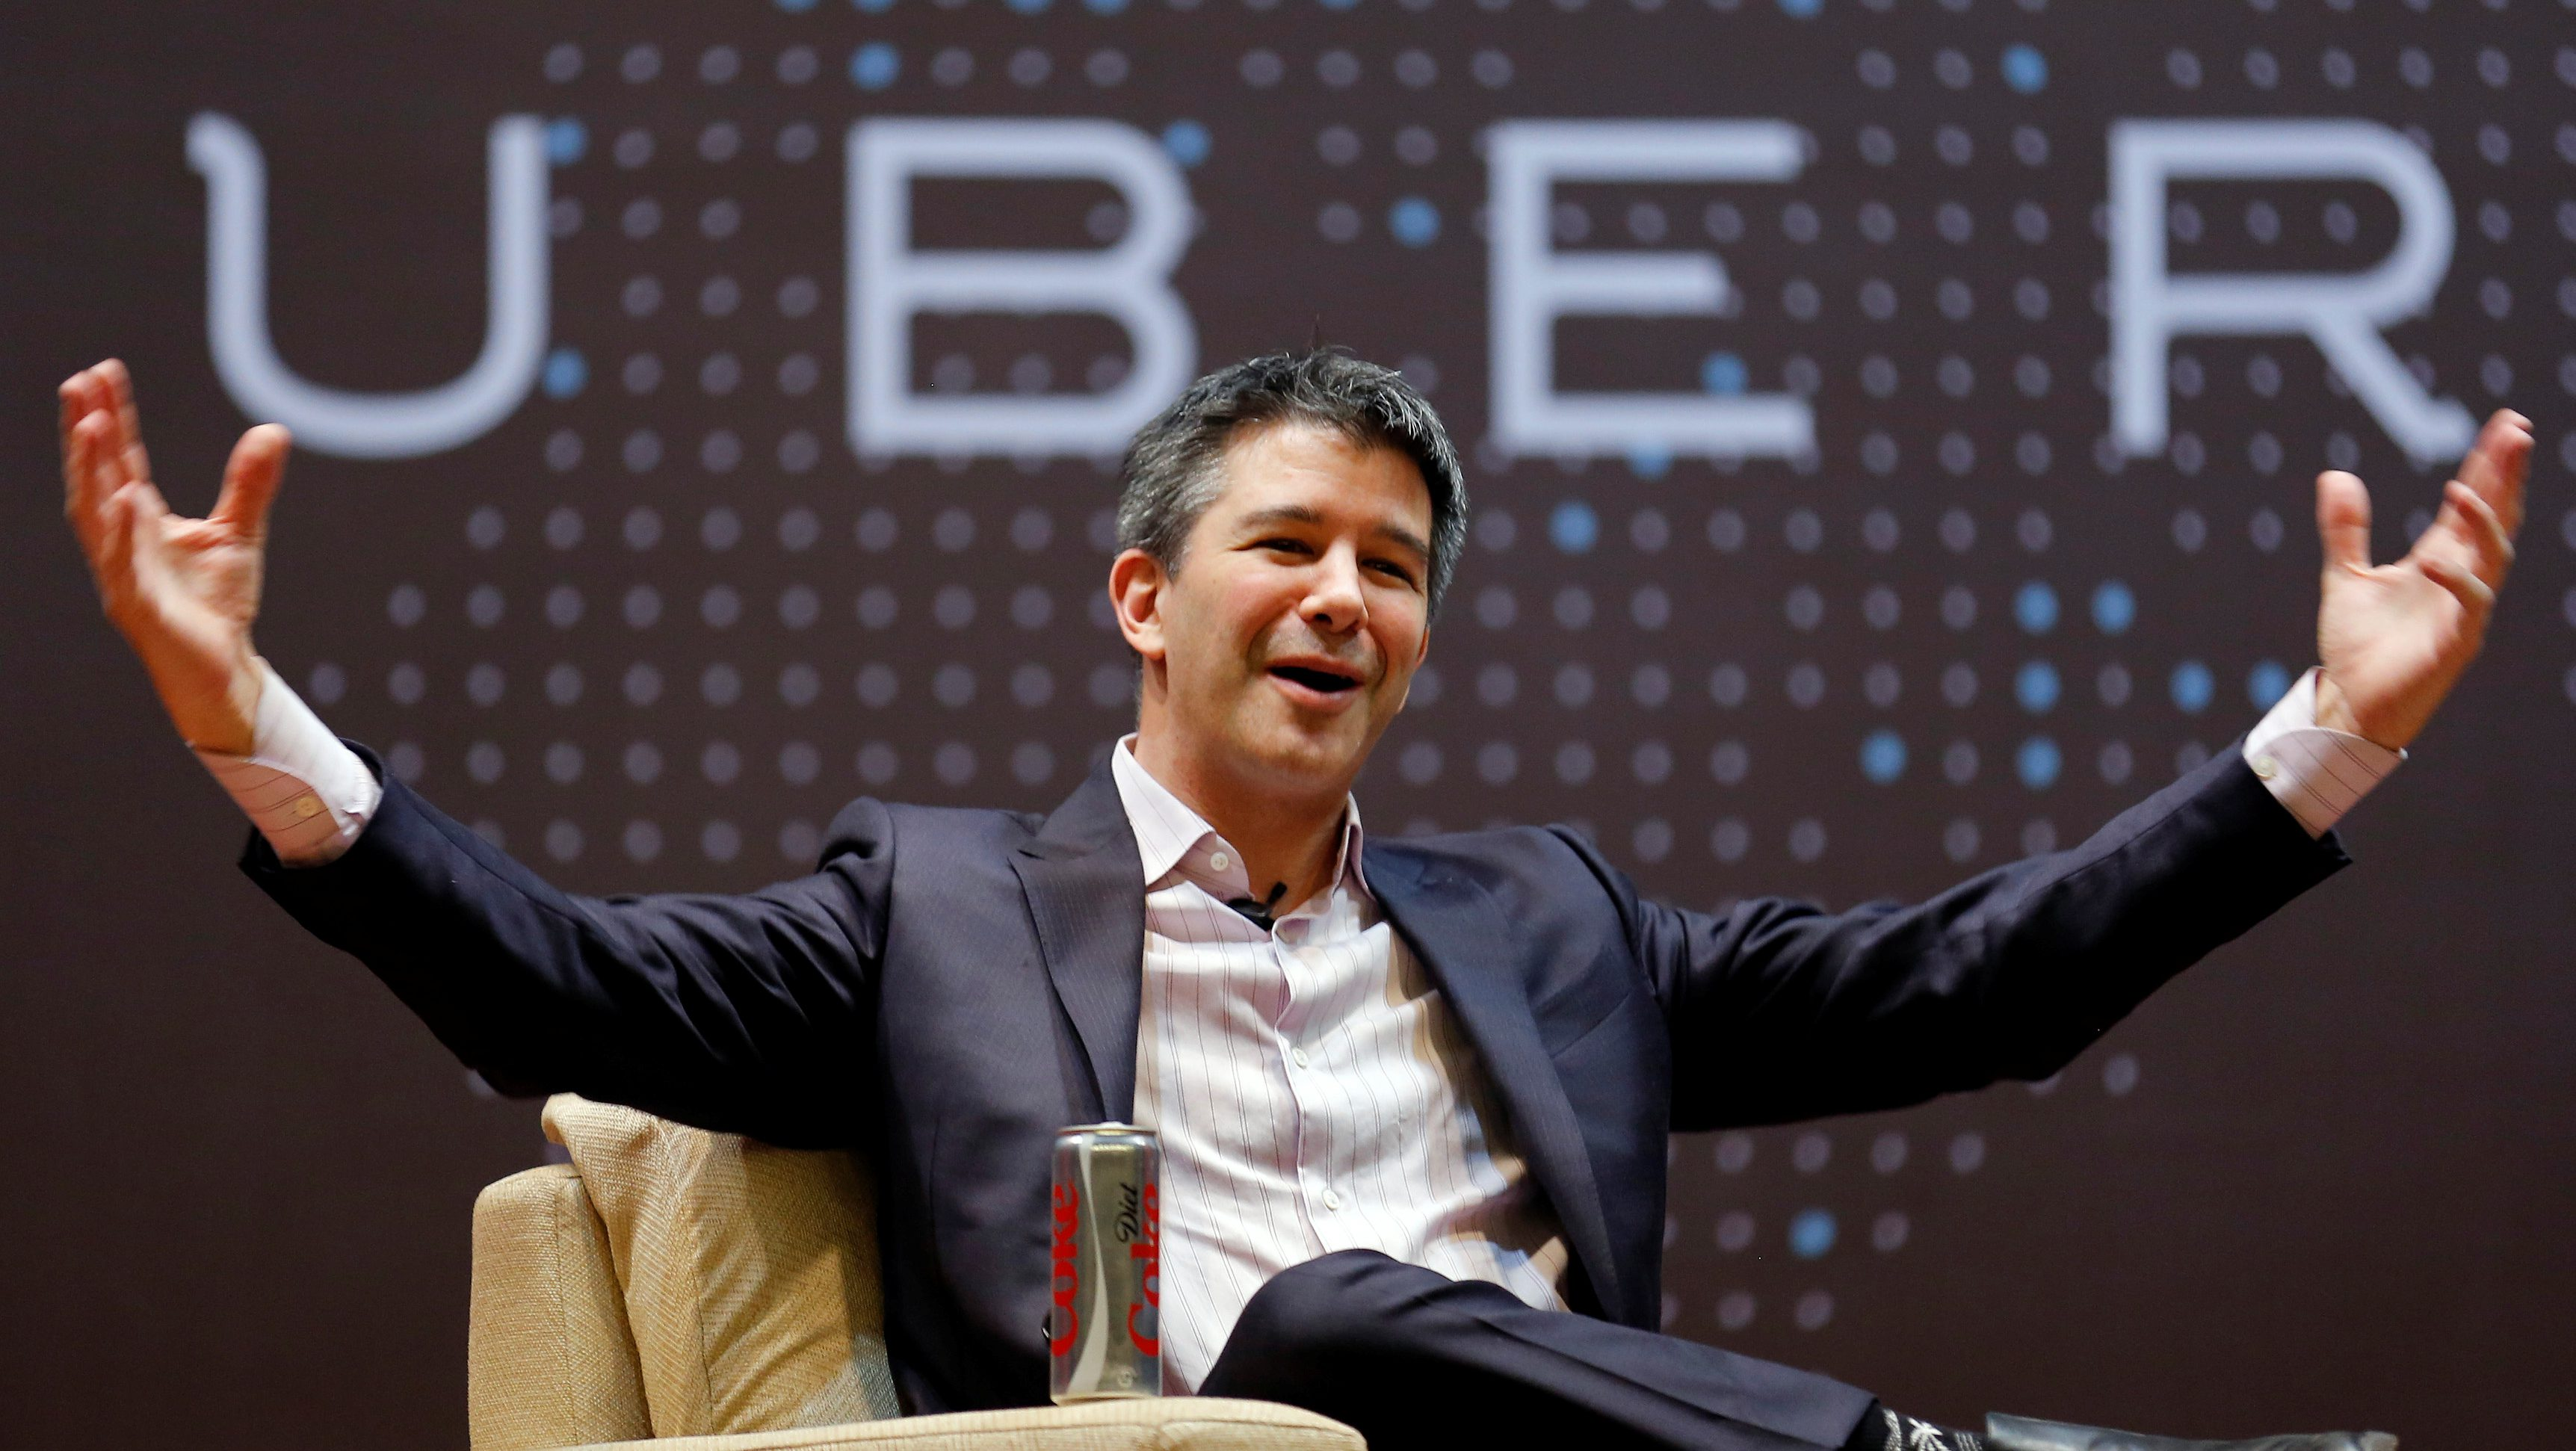 Is there a second act for fired Uber CEO Travis Kalanick?